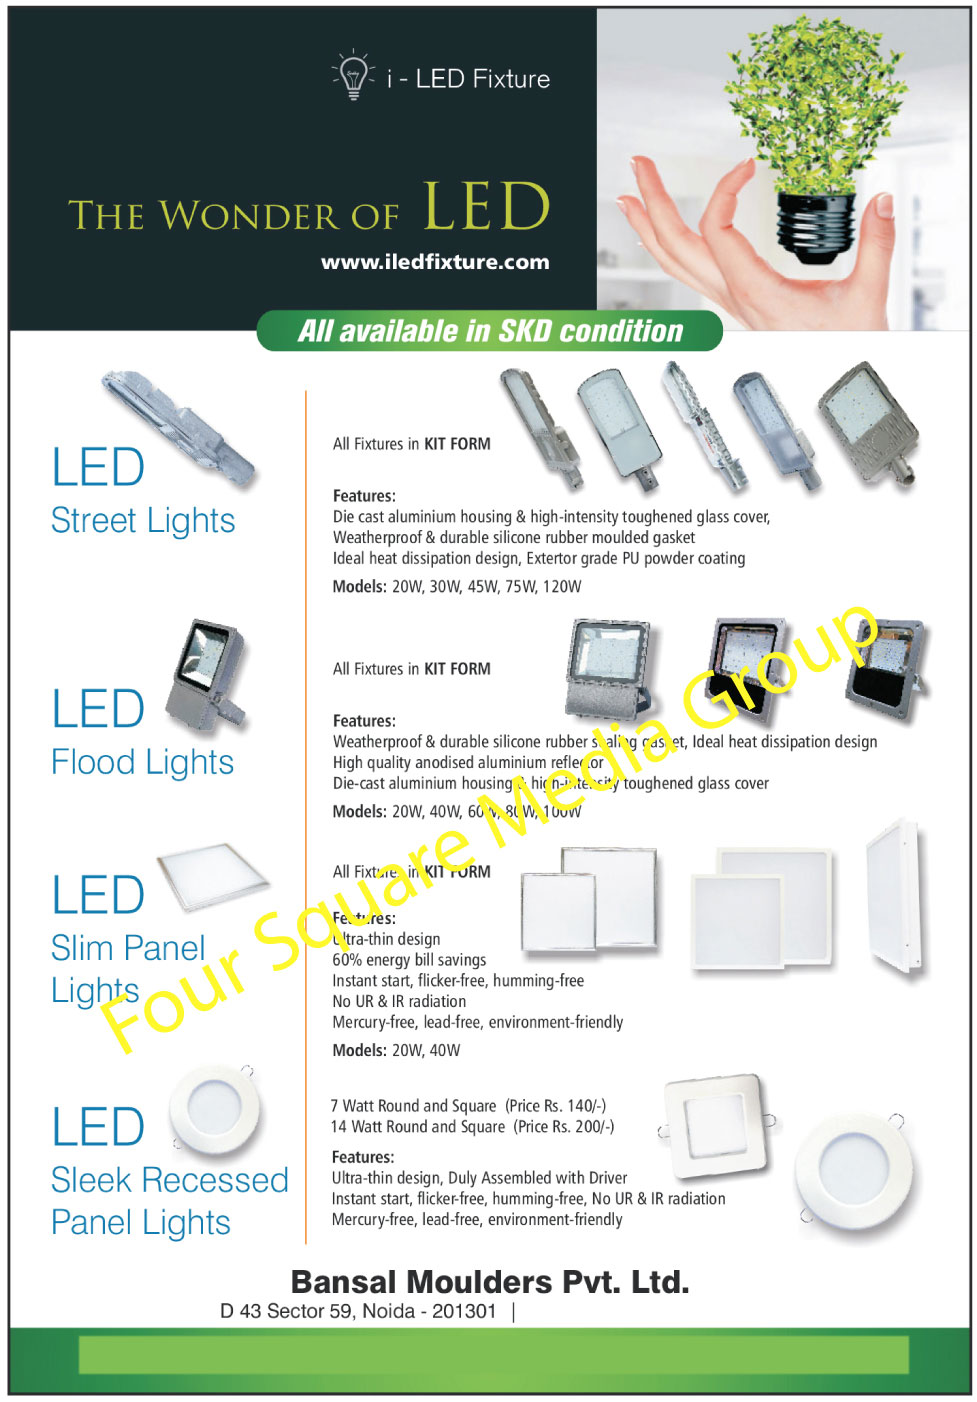 Led Lights, Led Street Lights, Led Flood Lights, Led Slim Panel Lights, Led Sleek Recessed Panel Lights, Sleek Recessed Led Panel Lights, Slim Led Panel Lights